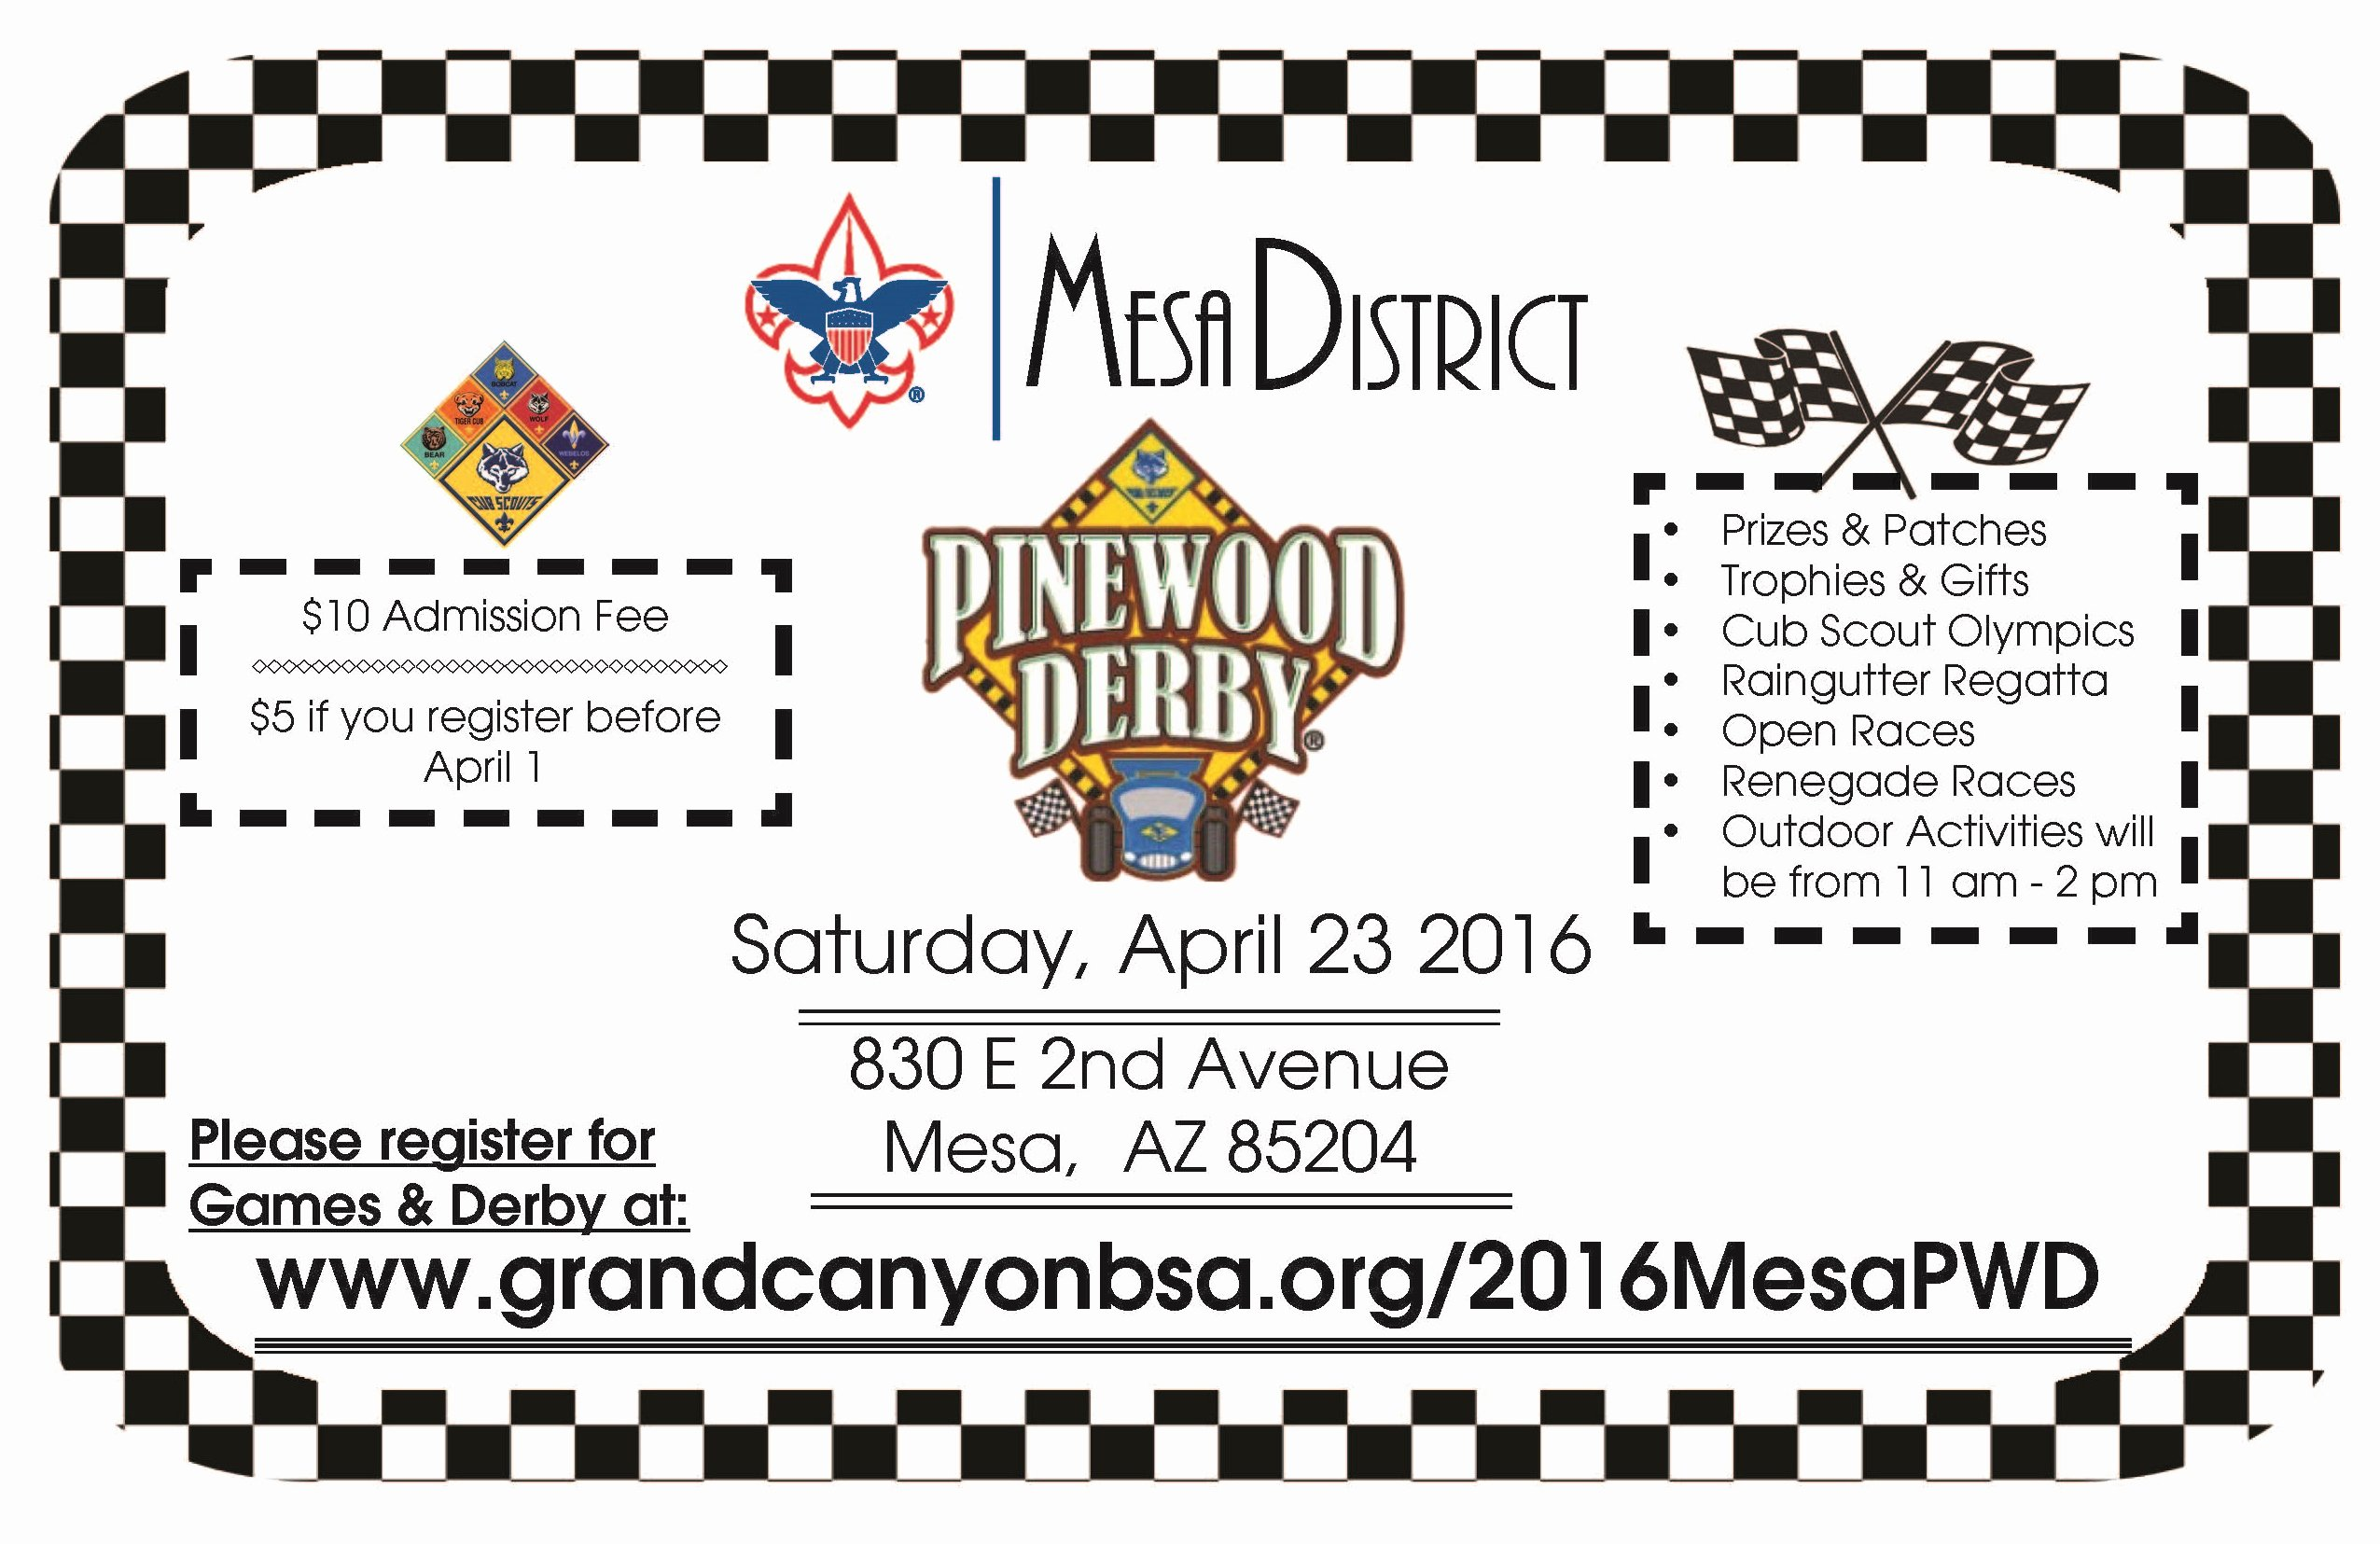 Pinewood Derby Flyer Template Lovely 2016 Mesa District Pinewood Derby